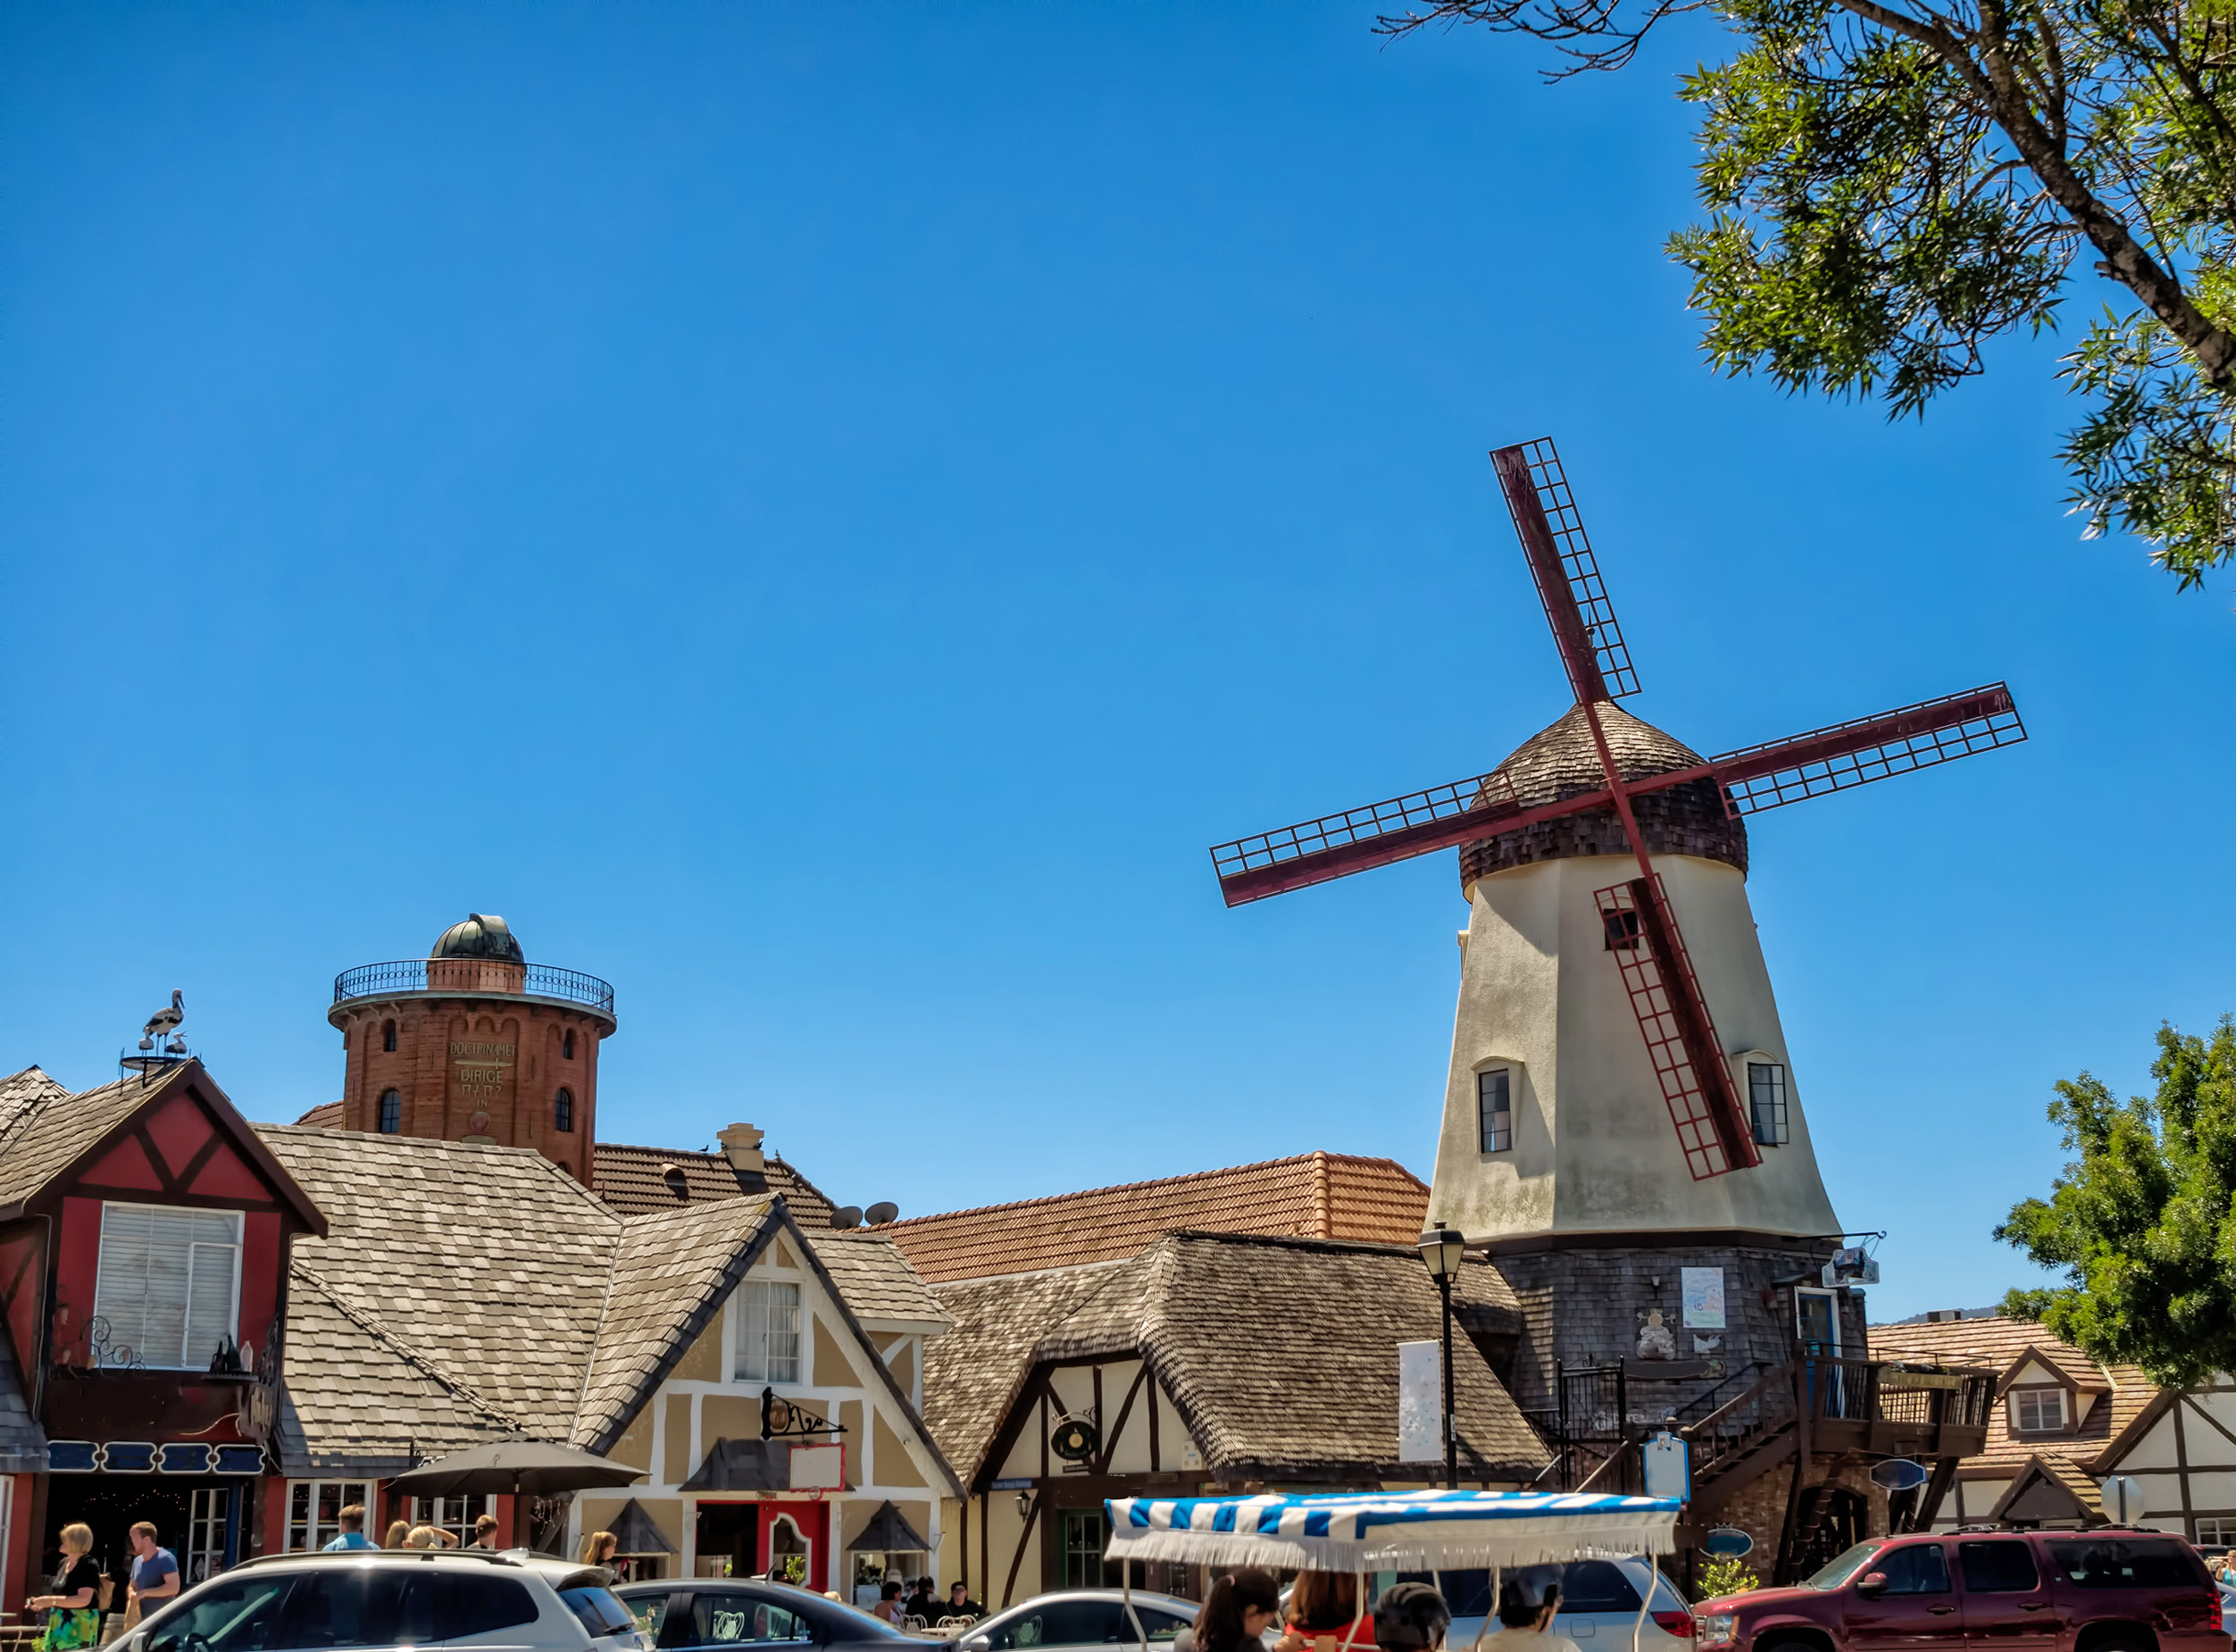 Danish shops and windmill